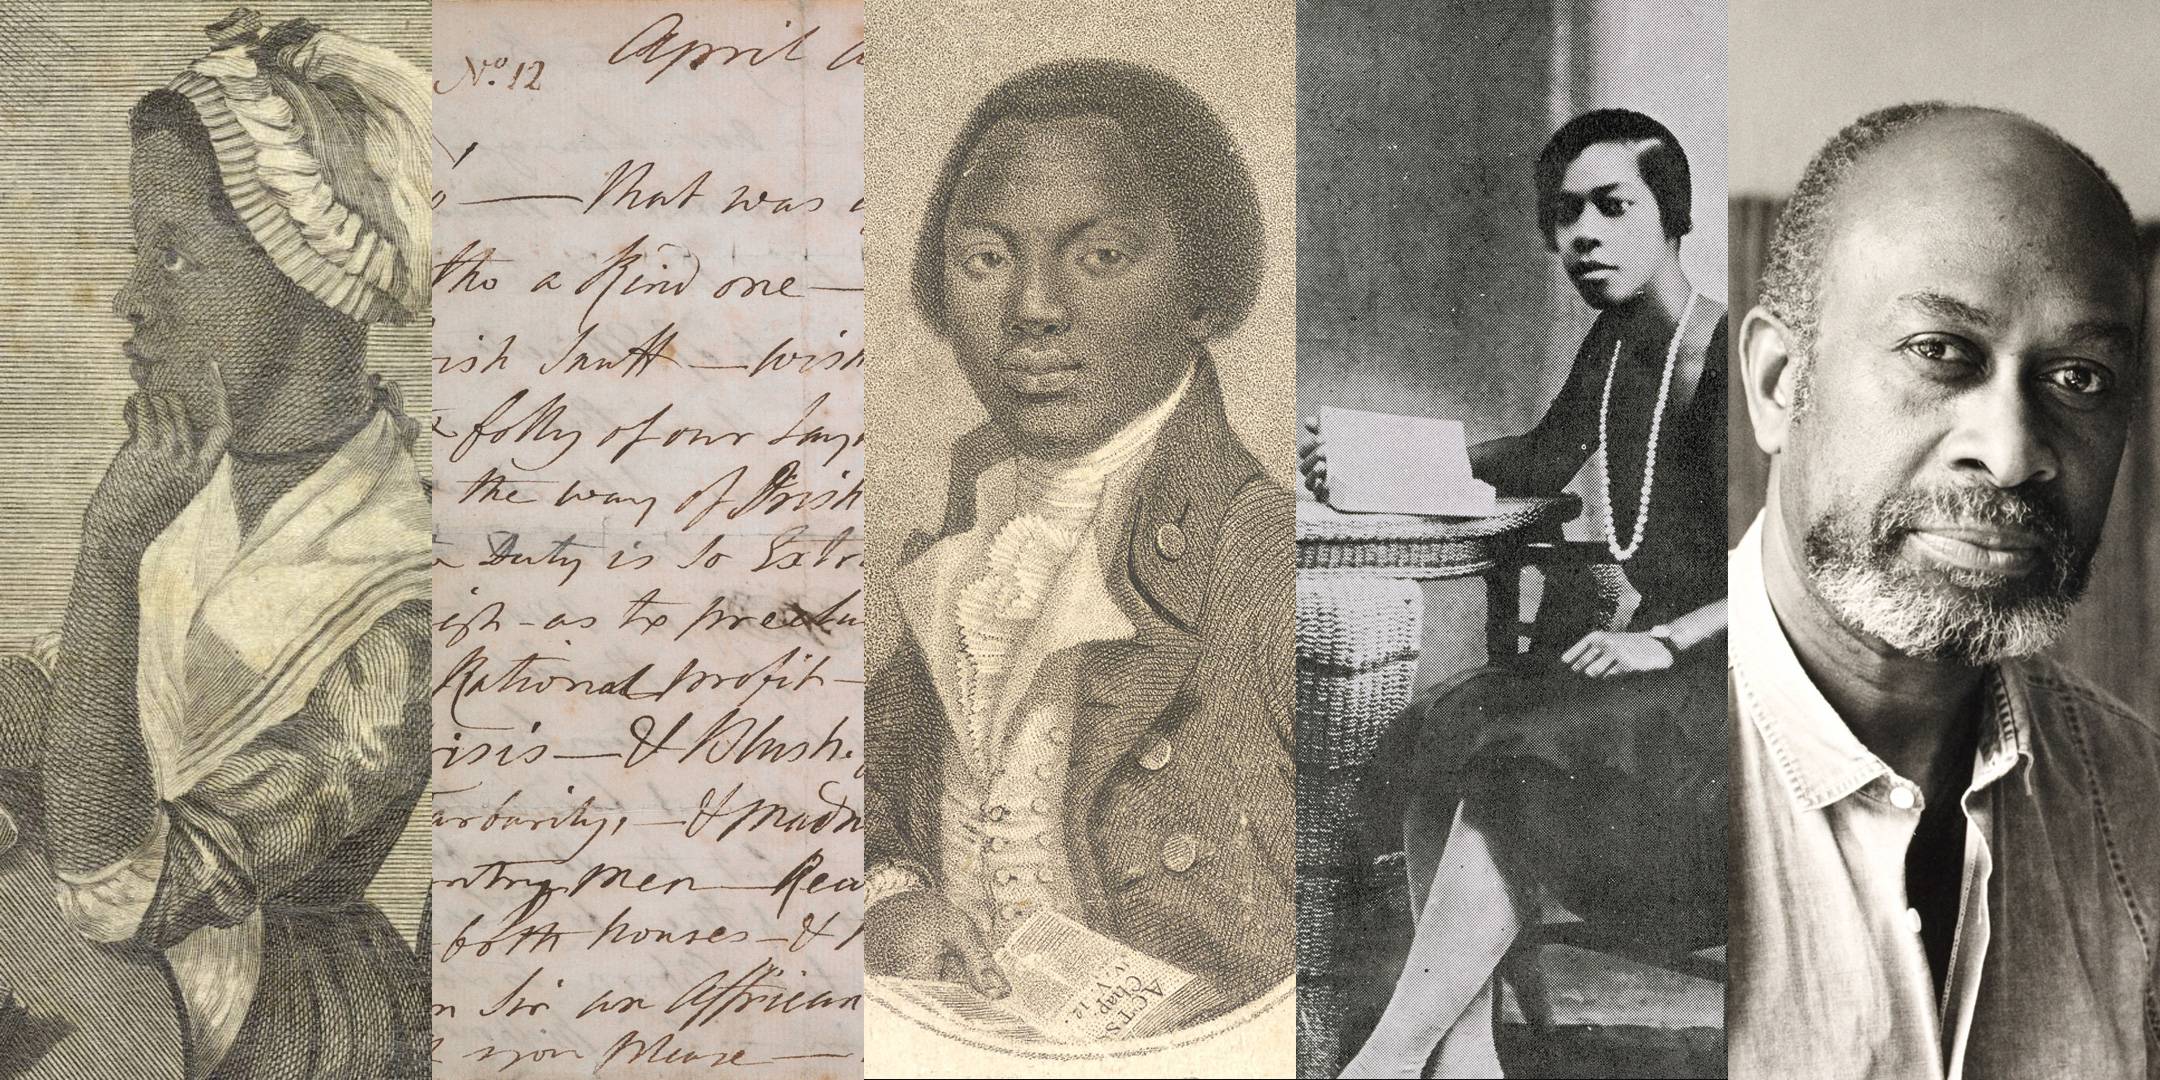 Images of Black British writers and their work depicting Phillis Wheatley, Olaudah Equiano, Una Marson and James Berry,